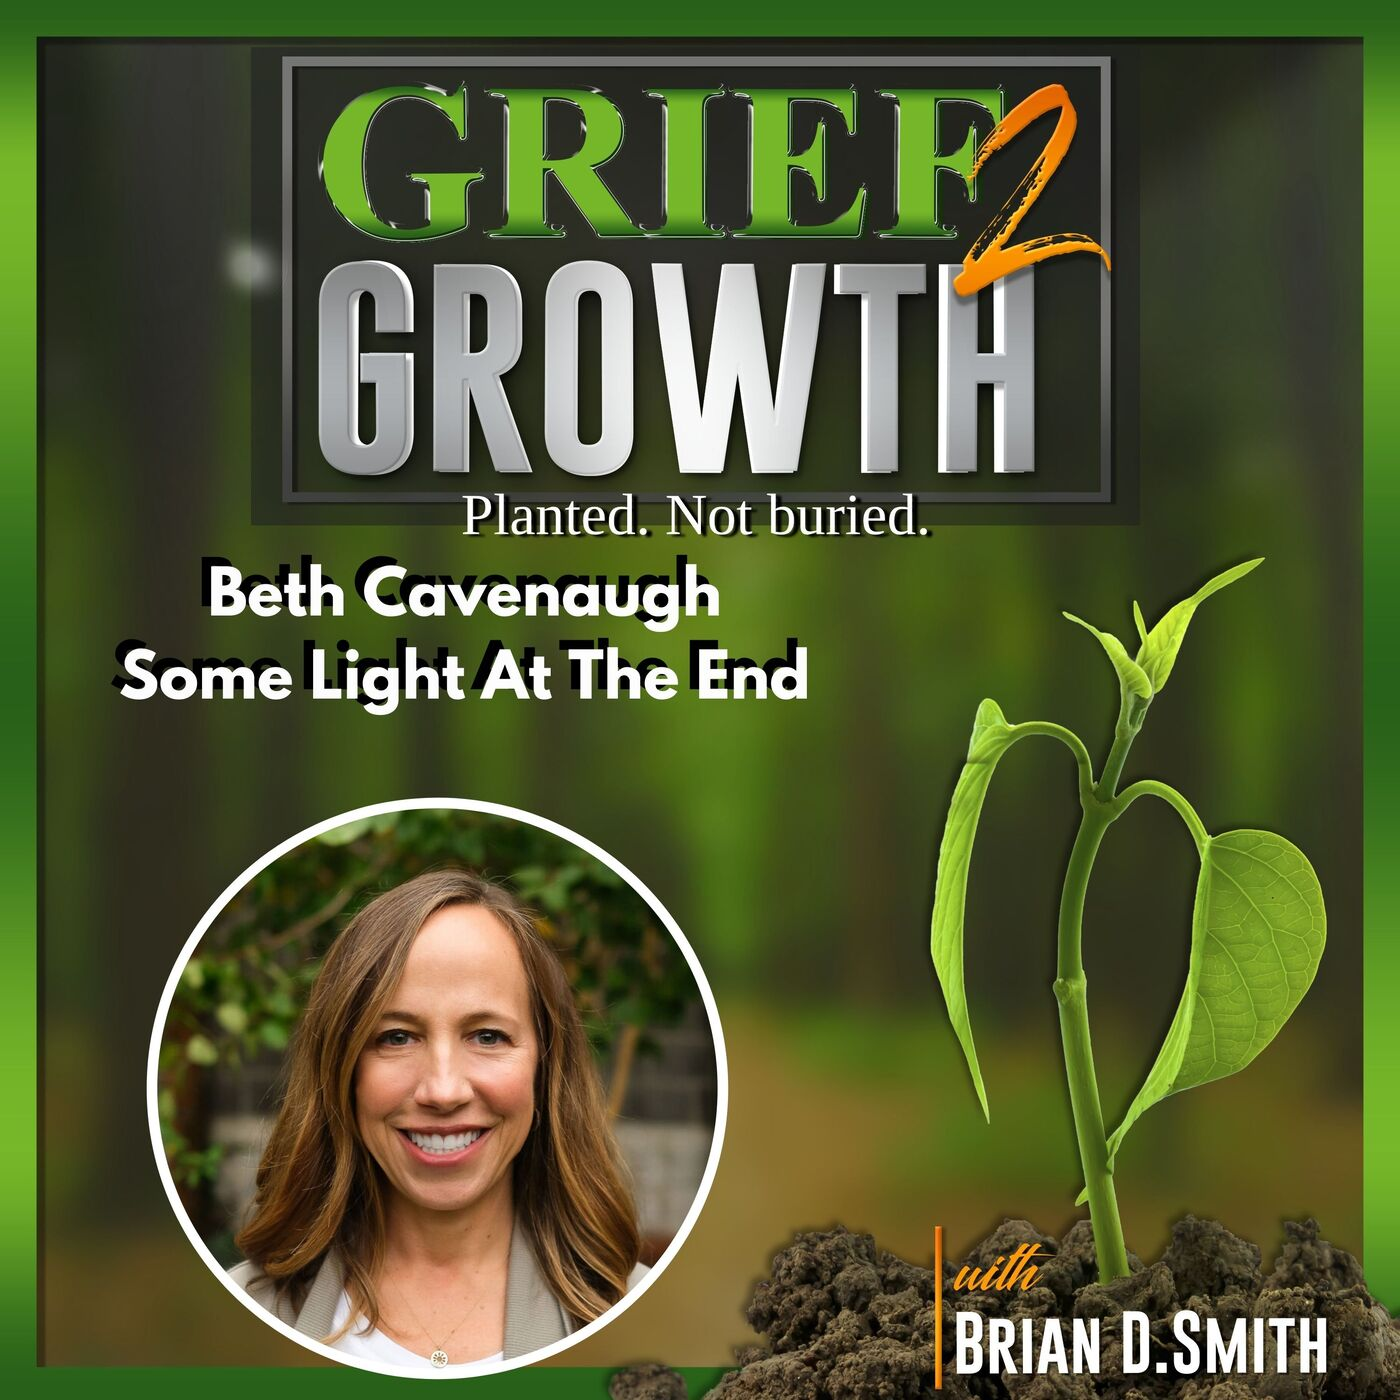 Beth Cavenaugh- Some Light At The End